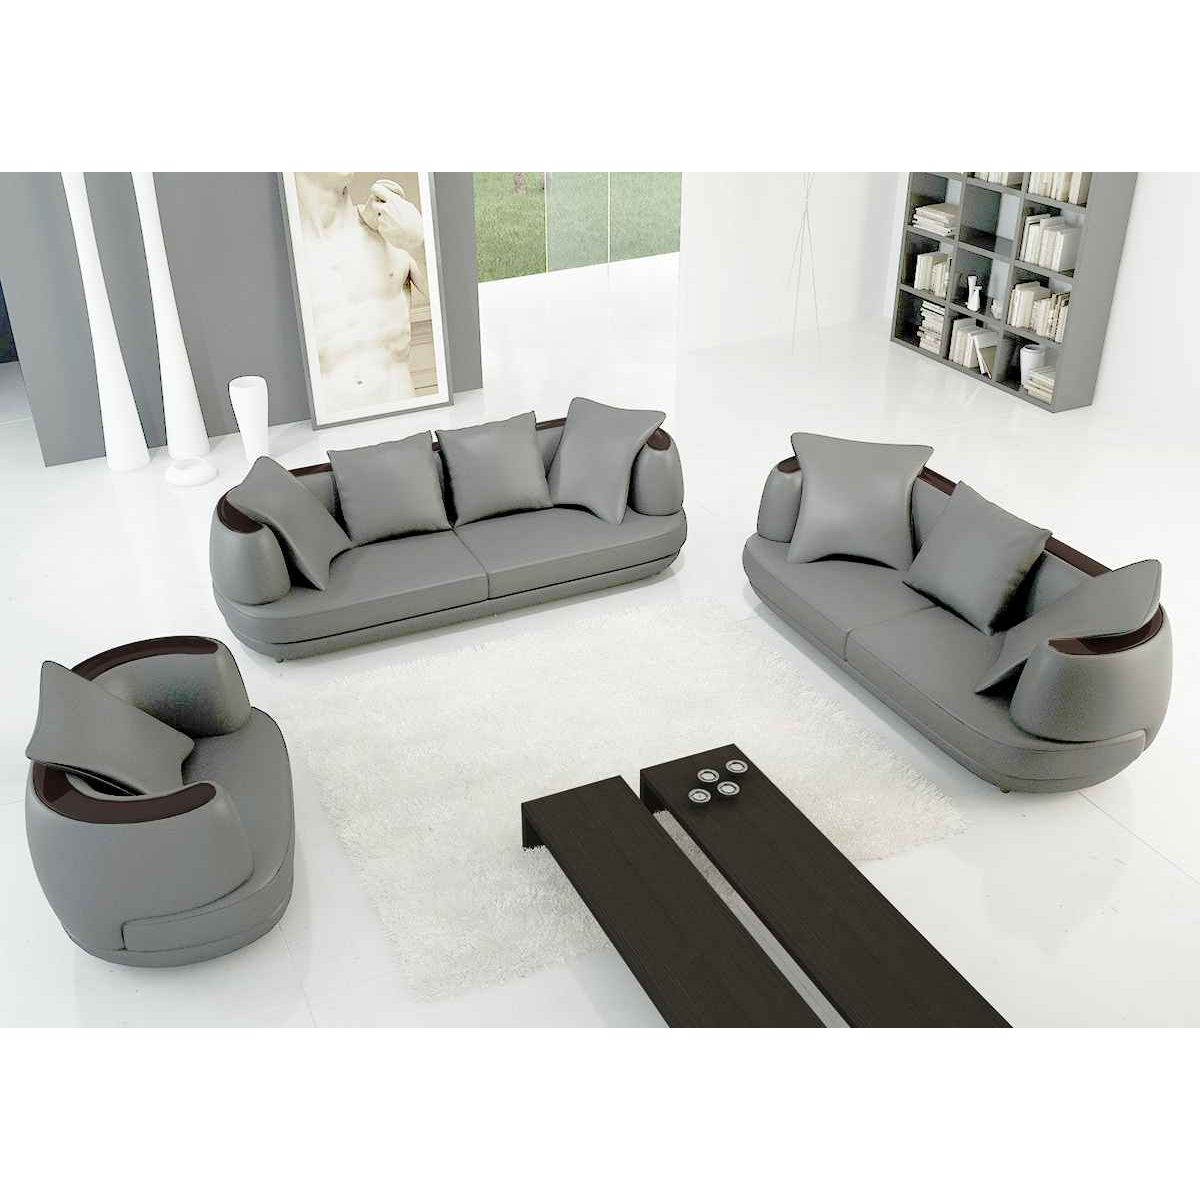 Deco in paris ensemble canape 3 2 1 places en cuir gris - Canape 3 places et 2 places ...